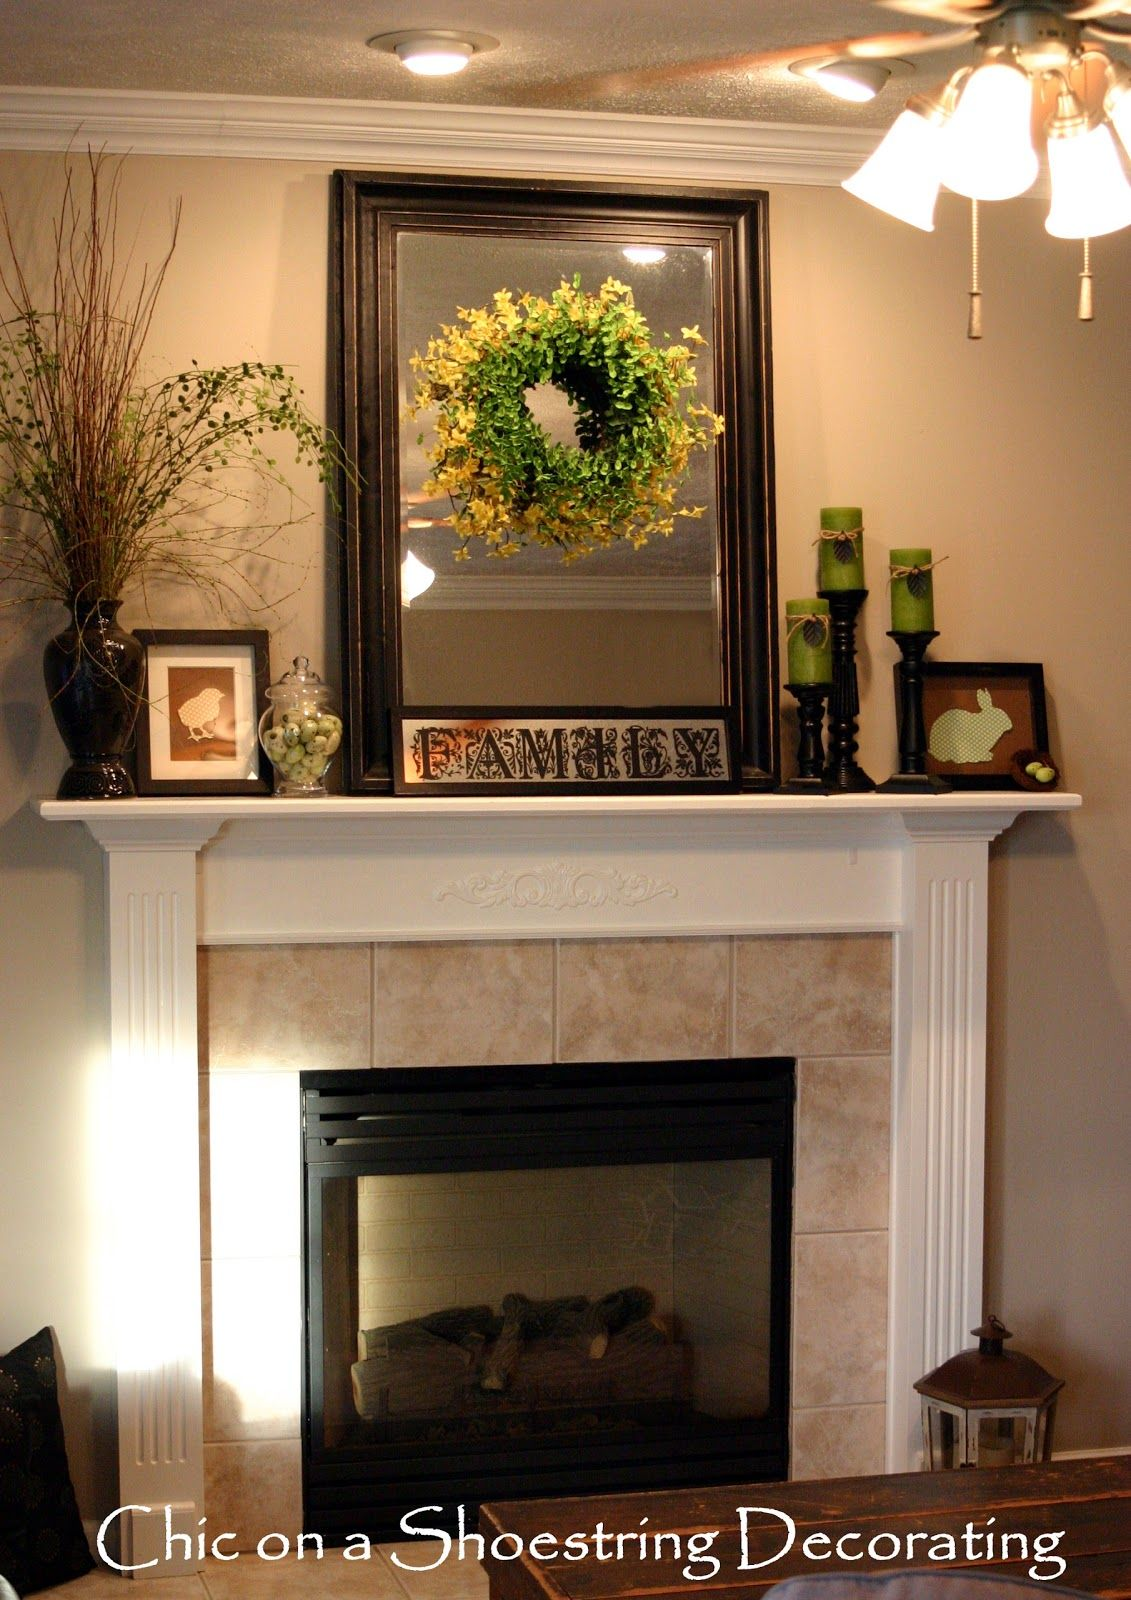 mantel decorating ideas decorating ideas great living room design ideas using easter wreath fireplace mantel decoration including ceiling fan with lamp and